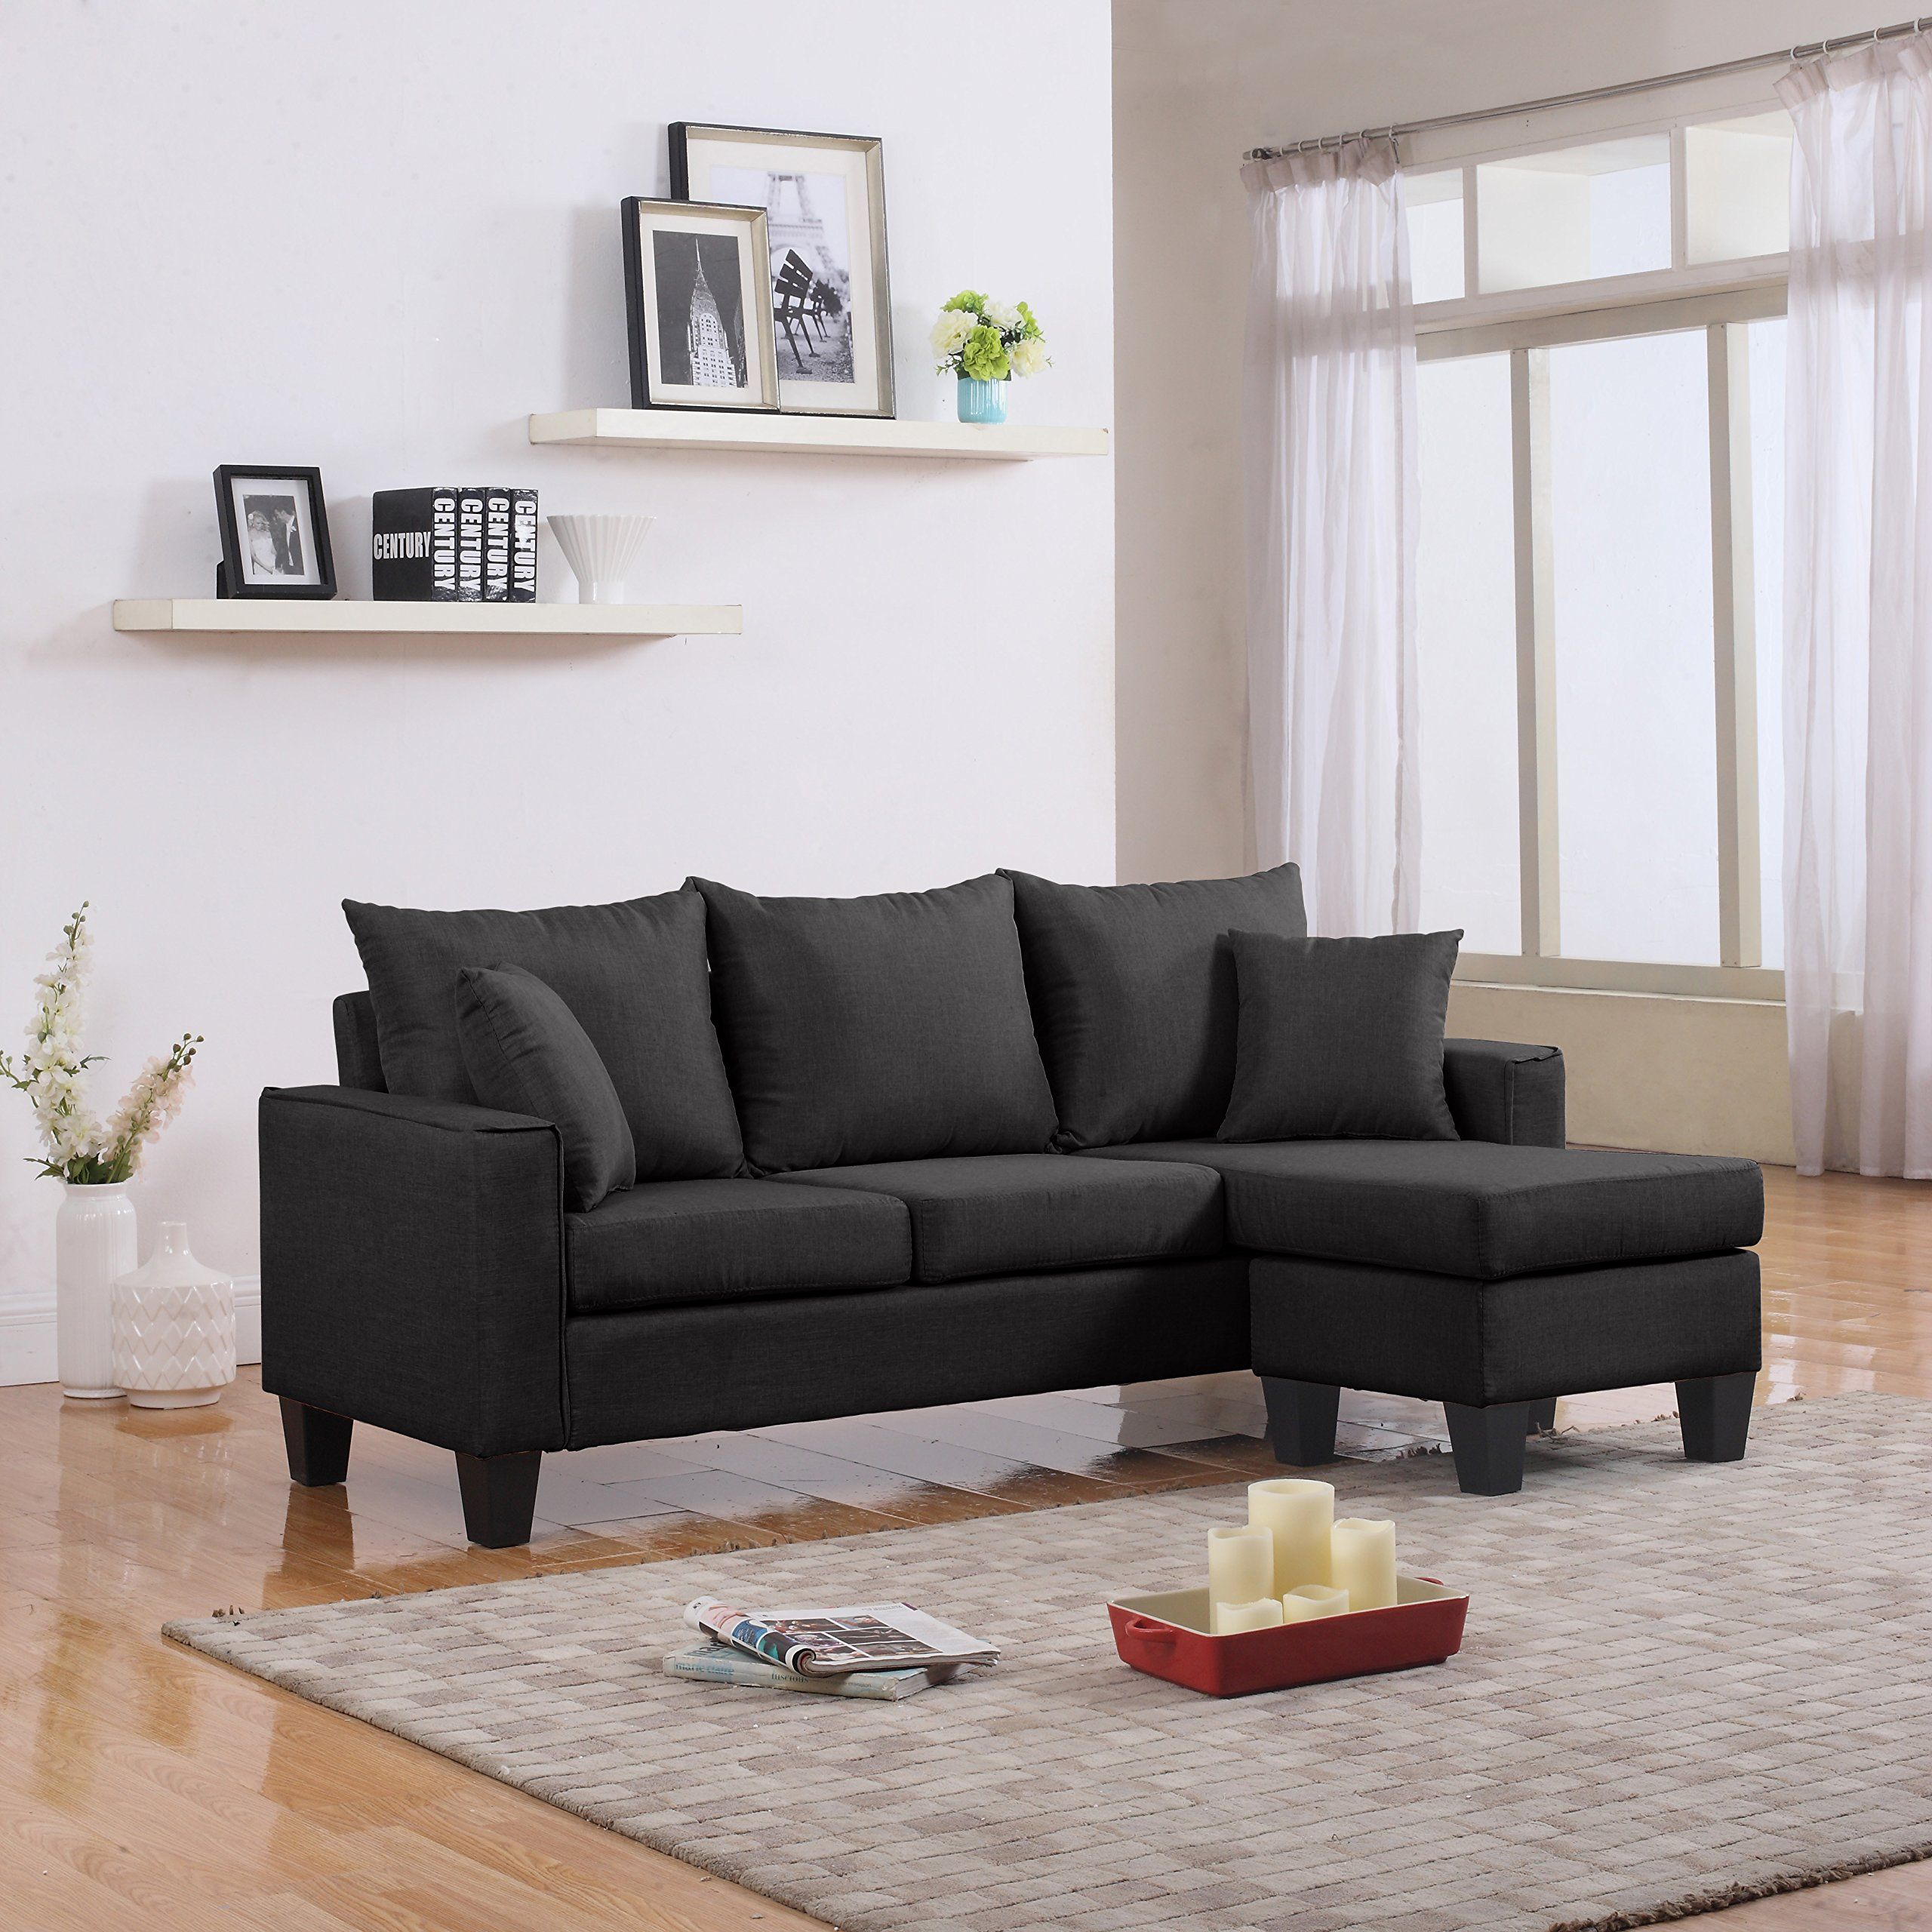 Modern Linen Fabric Small Space Sectional Sofa With Reversible Chaise Dark Grey Check This Aweso Small Sectional Sofa Fabric Sectional Sofas Small Room Sofa